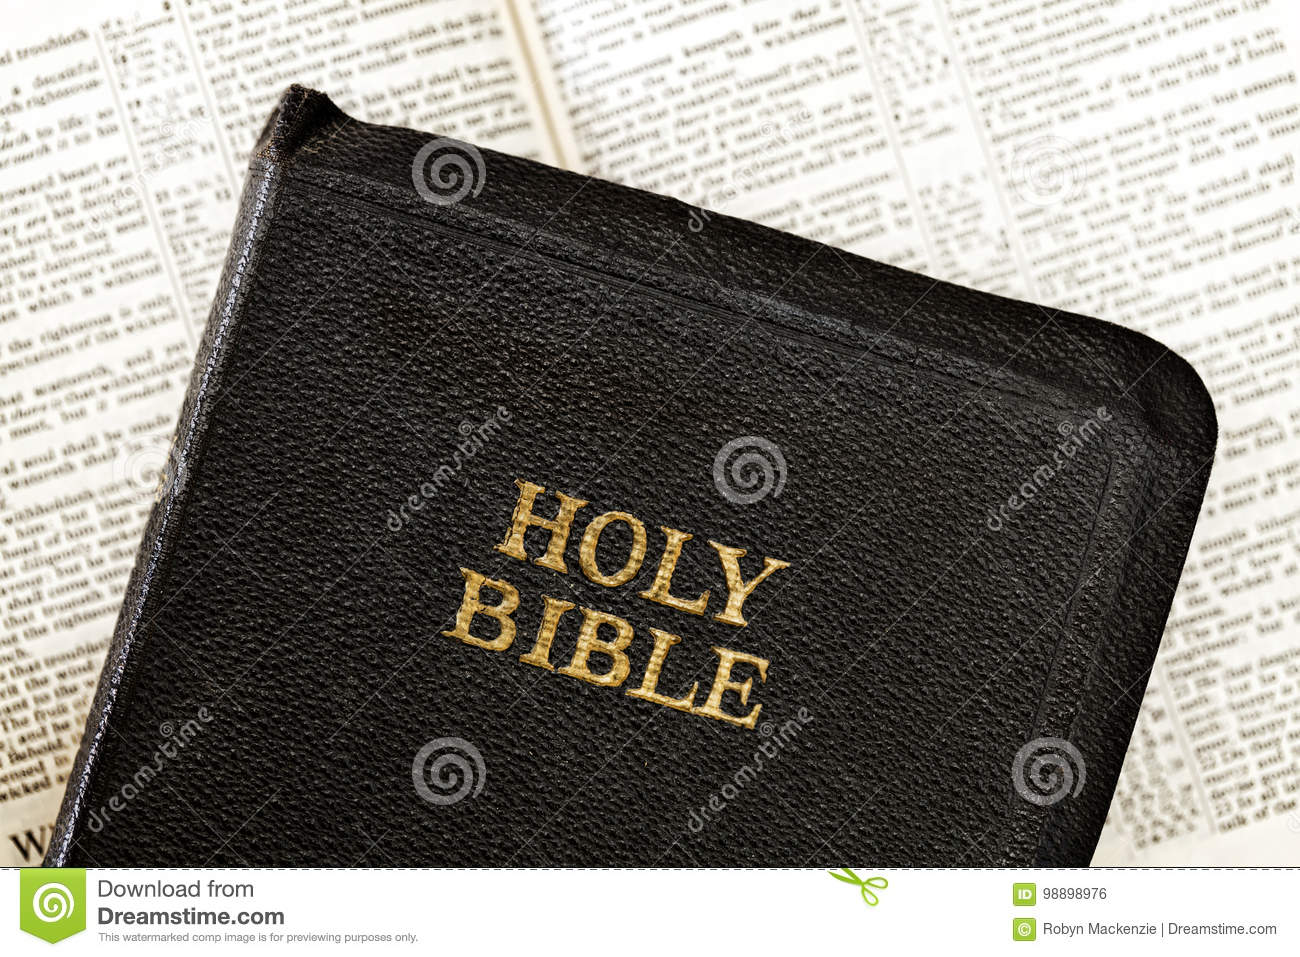 Old Bible over Blurred Open Book